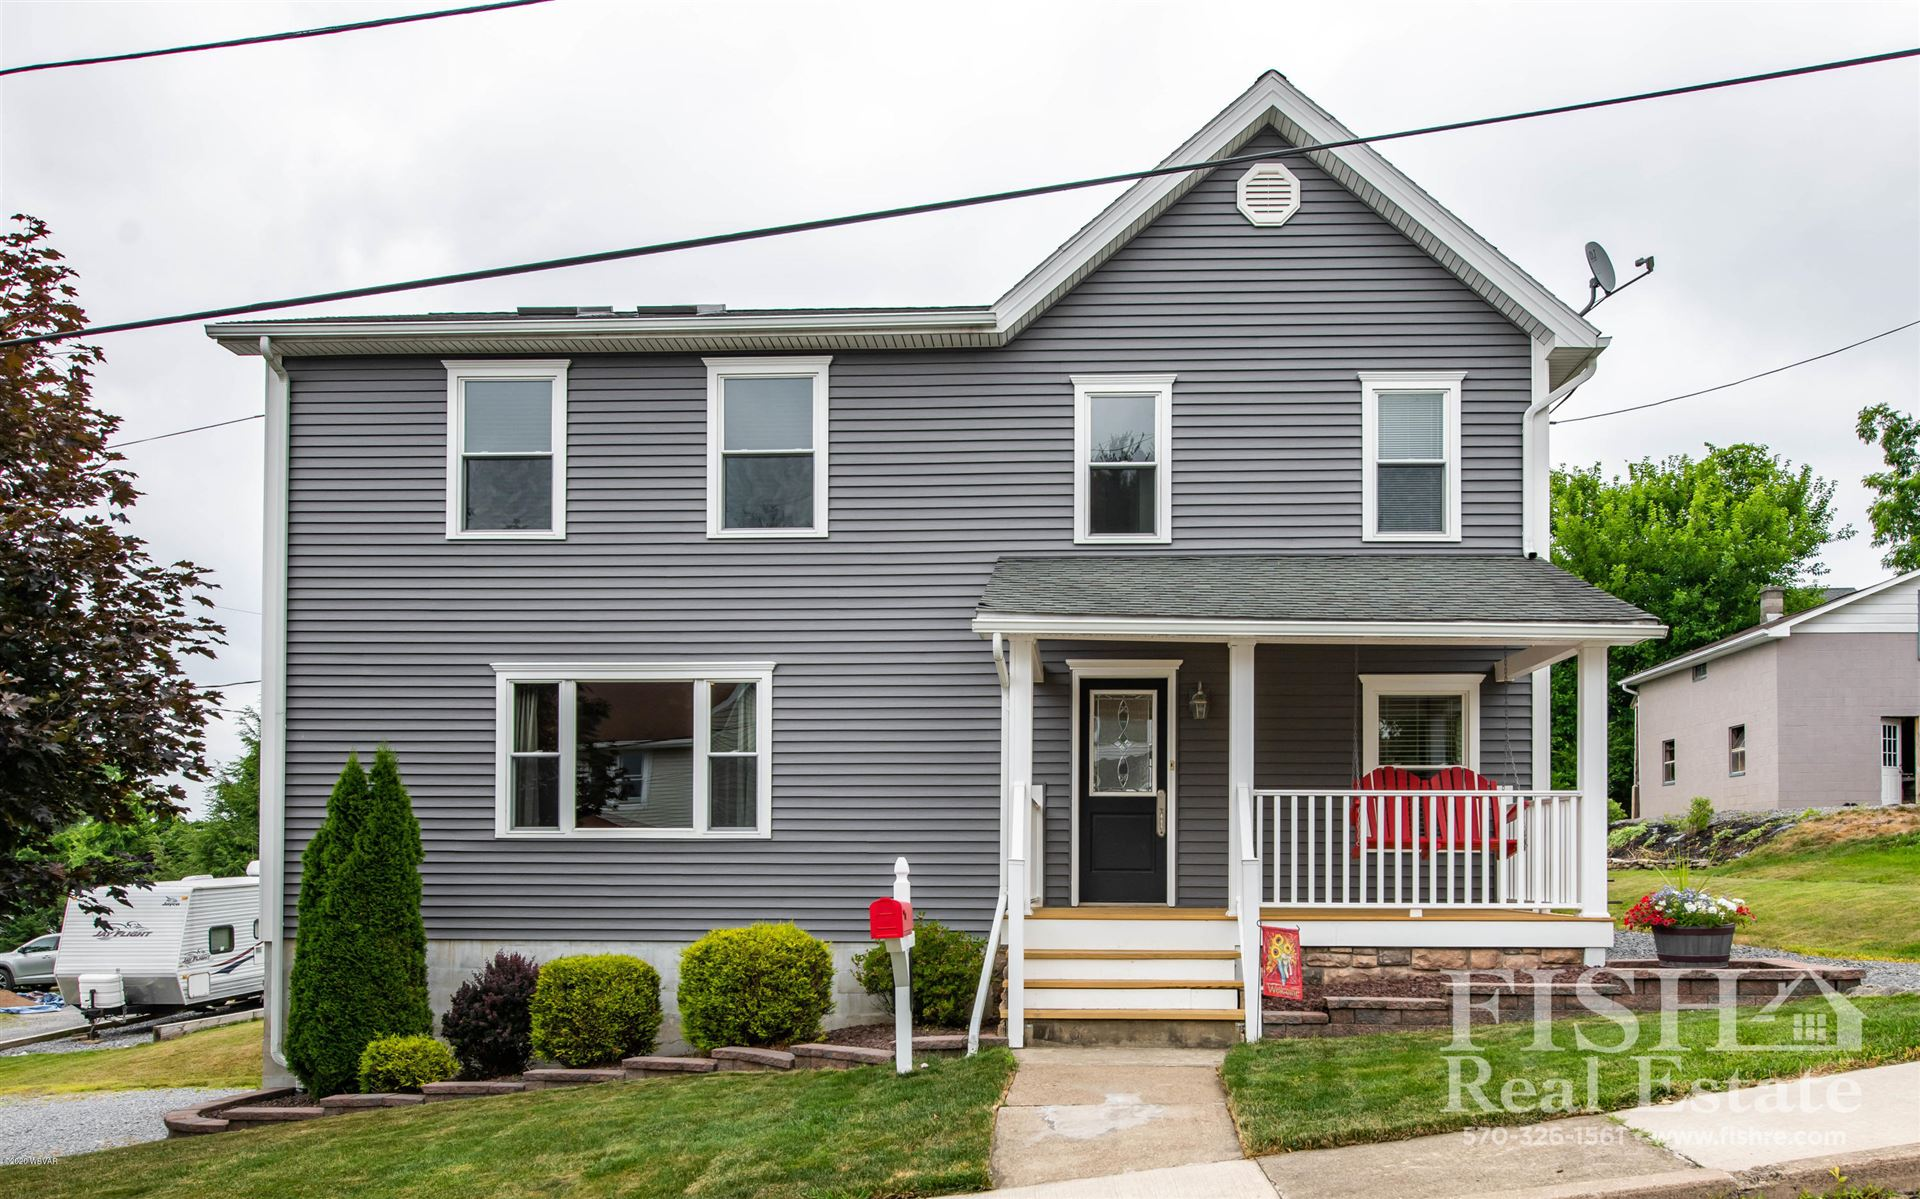 219 GORDON STREET, South Williamsport, PA 17702 - #: WB-90589